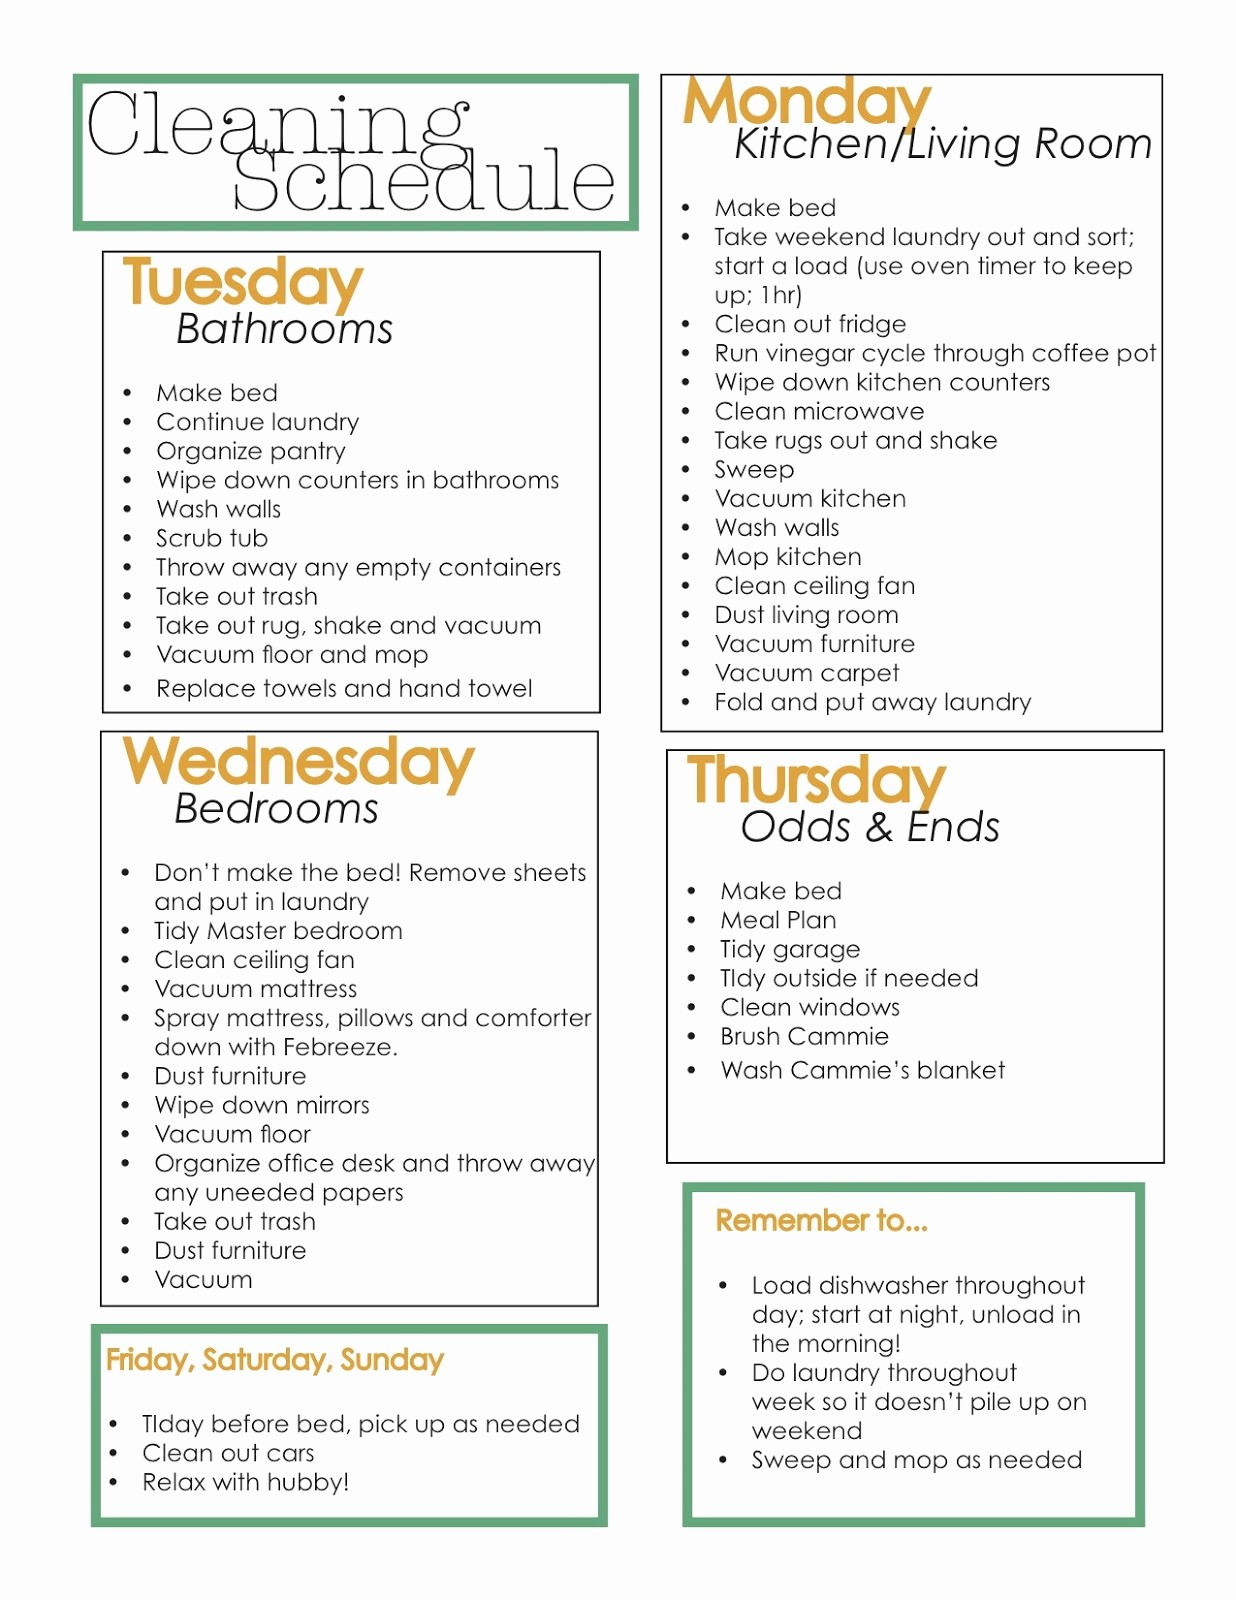 Cleaning Schedule Template for Home Fresh Home Cleaning Schedule